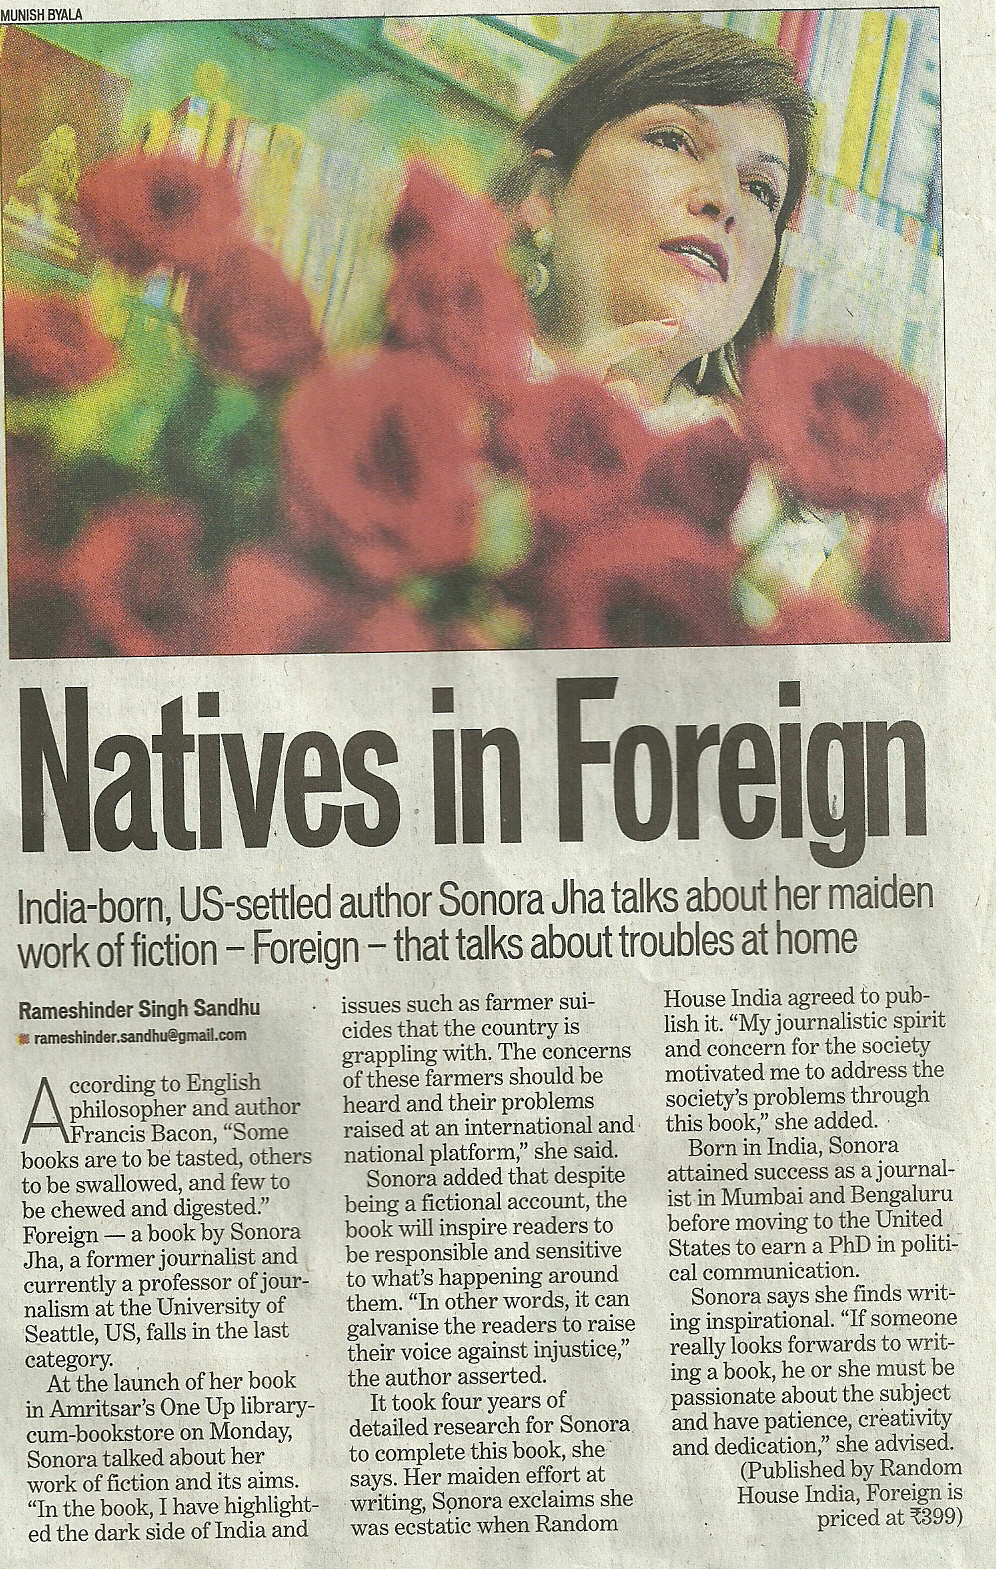 An article about Foreign and Sonora Jha in The Hindustan Times